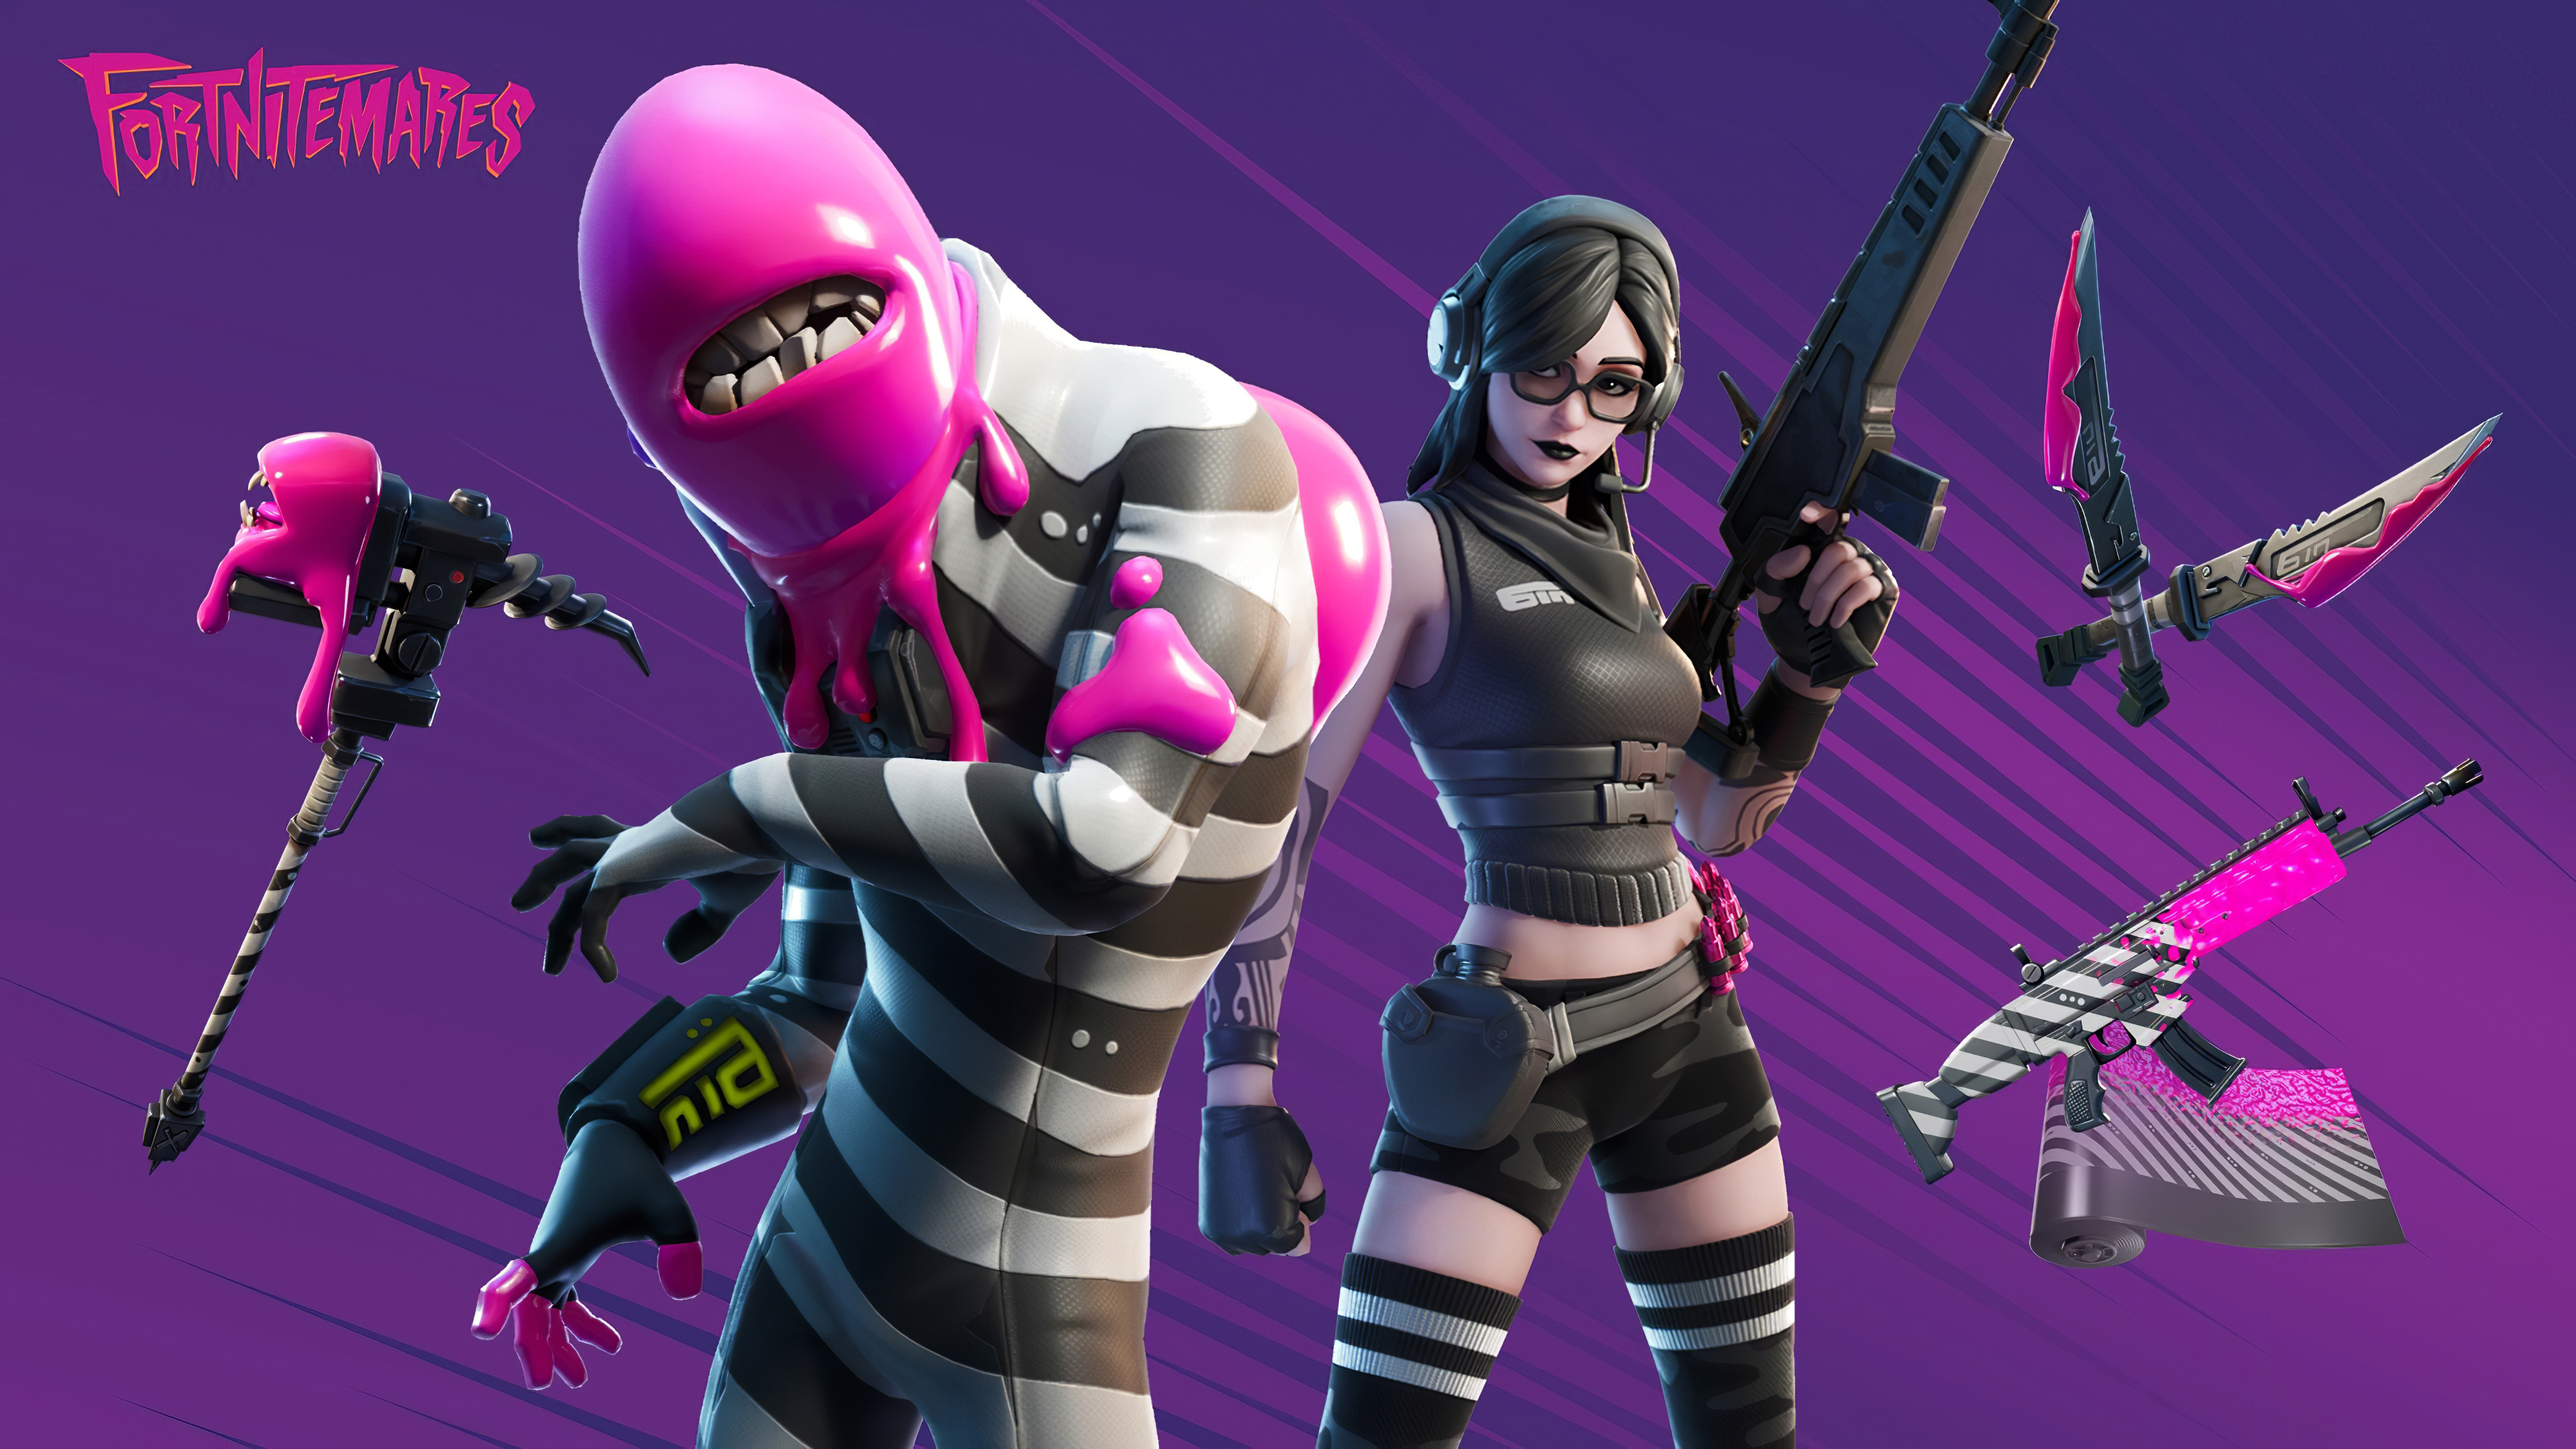 1600x900 Fortnitemares Jawbreaker Outfit 1600x900 Resolution Hd 4k Wallpapers Images Backgrounds Photos And Pictures